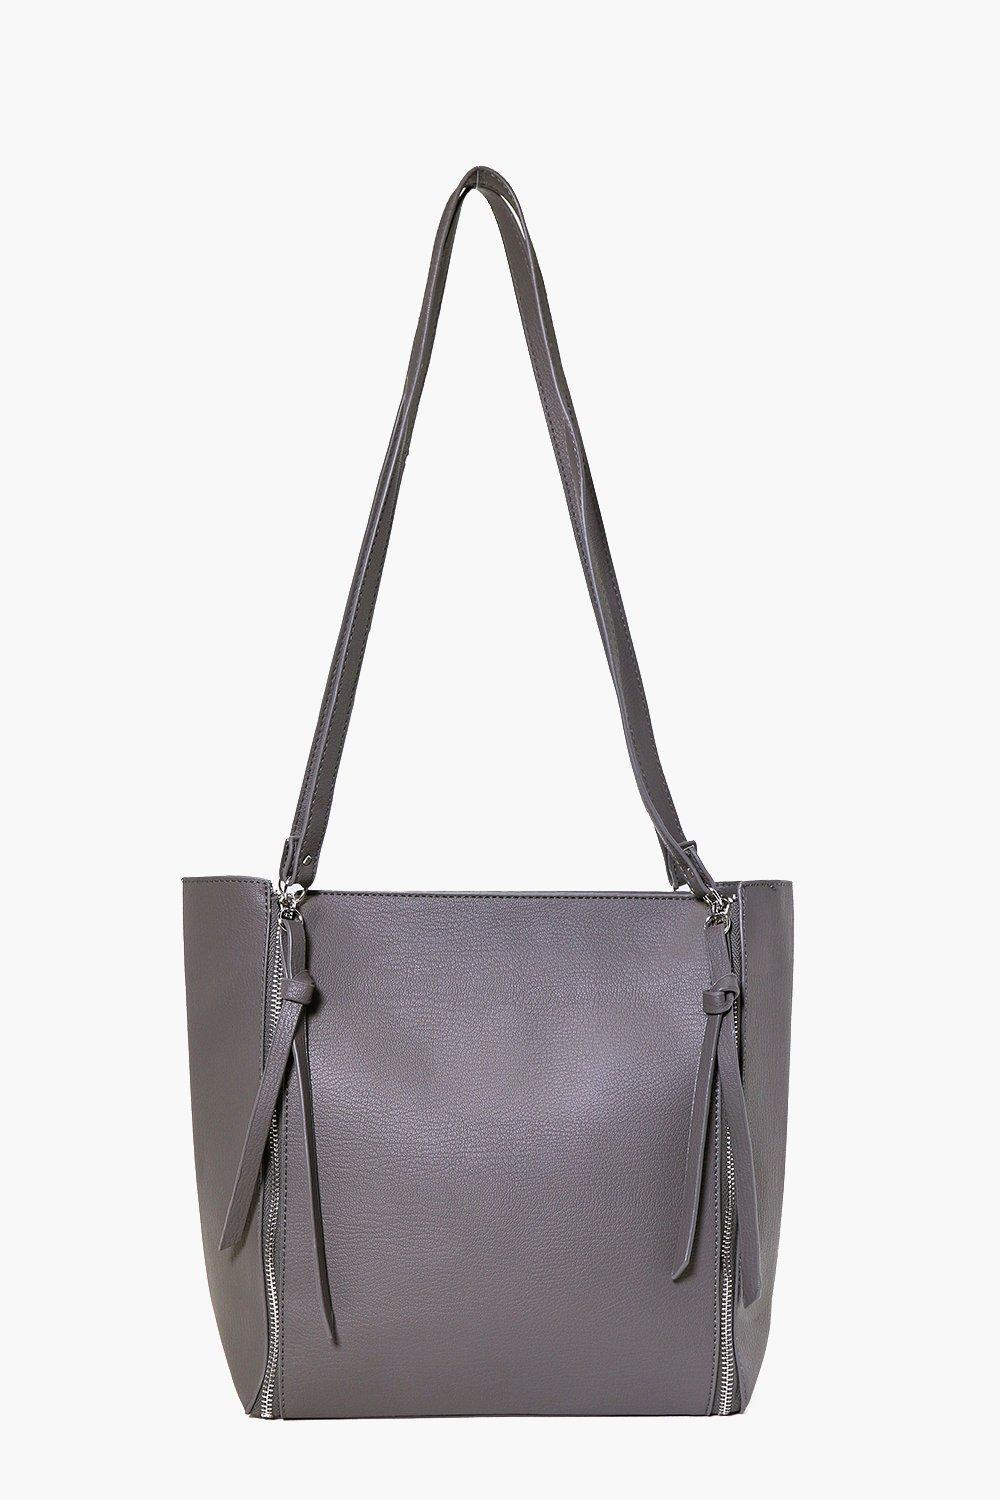 Zip Side Day Bag Grey - predominant colour: mid grey; occasions: casual, creative work; type of pattern: standard; style: tote; length: shoulder (tucks under arm); size: standard; material: leather; pattern: plain; finish: plain; wardrobe: investment; season: a/w 2016